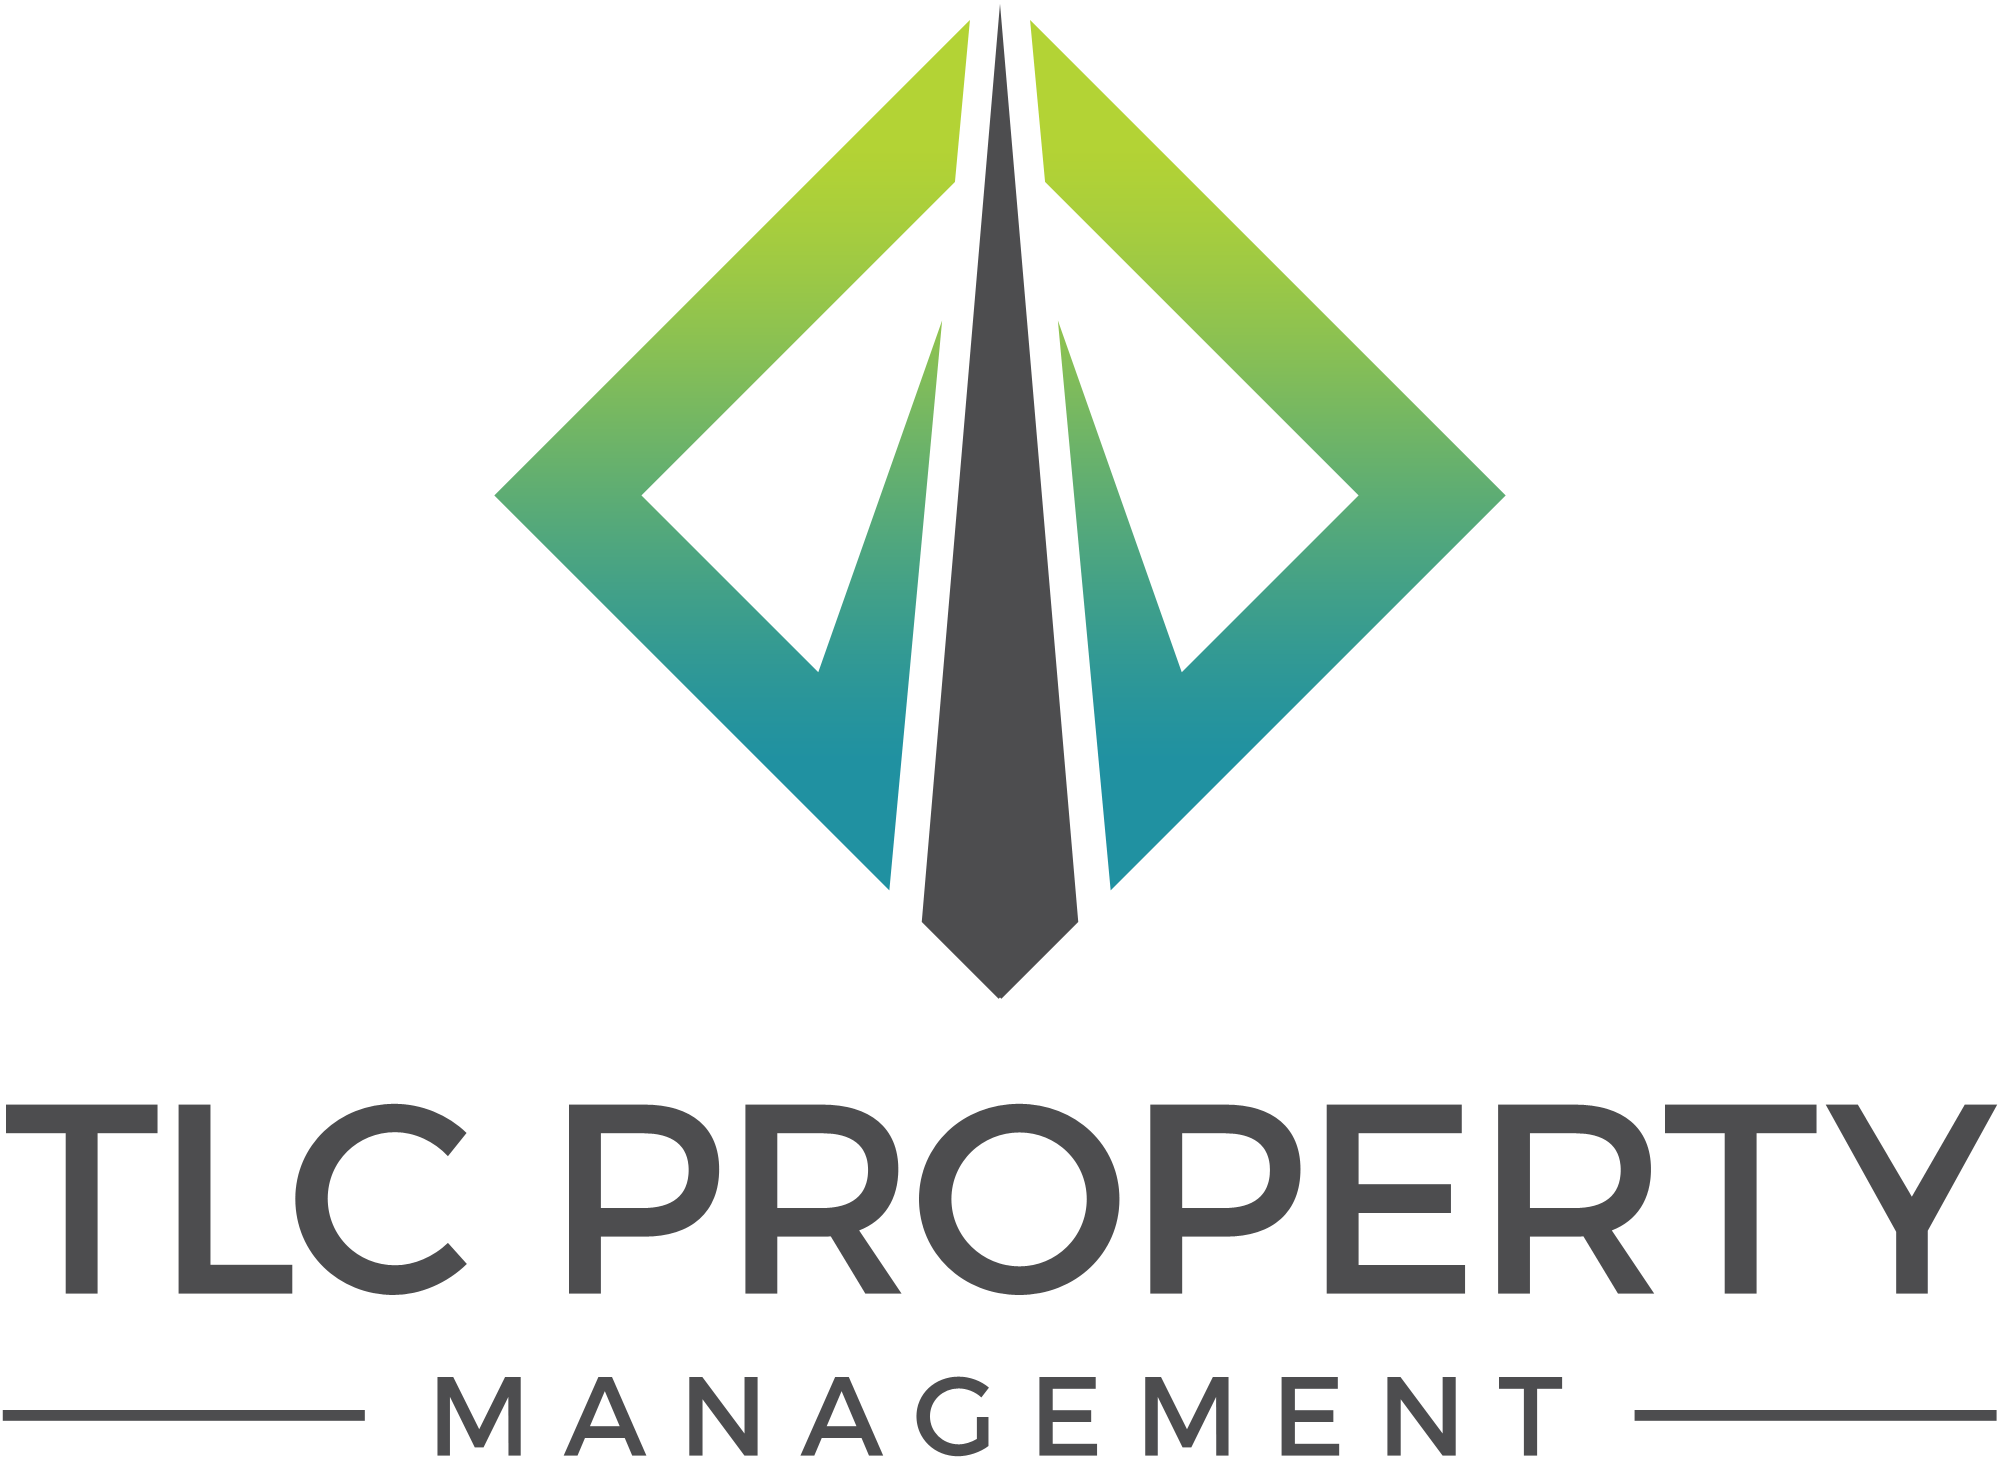 Design a simple and punctual design for a property management company